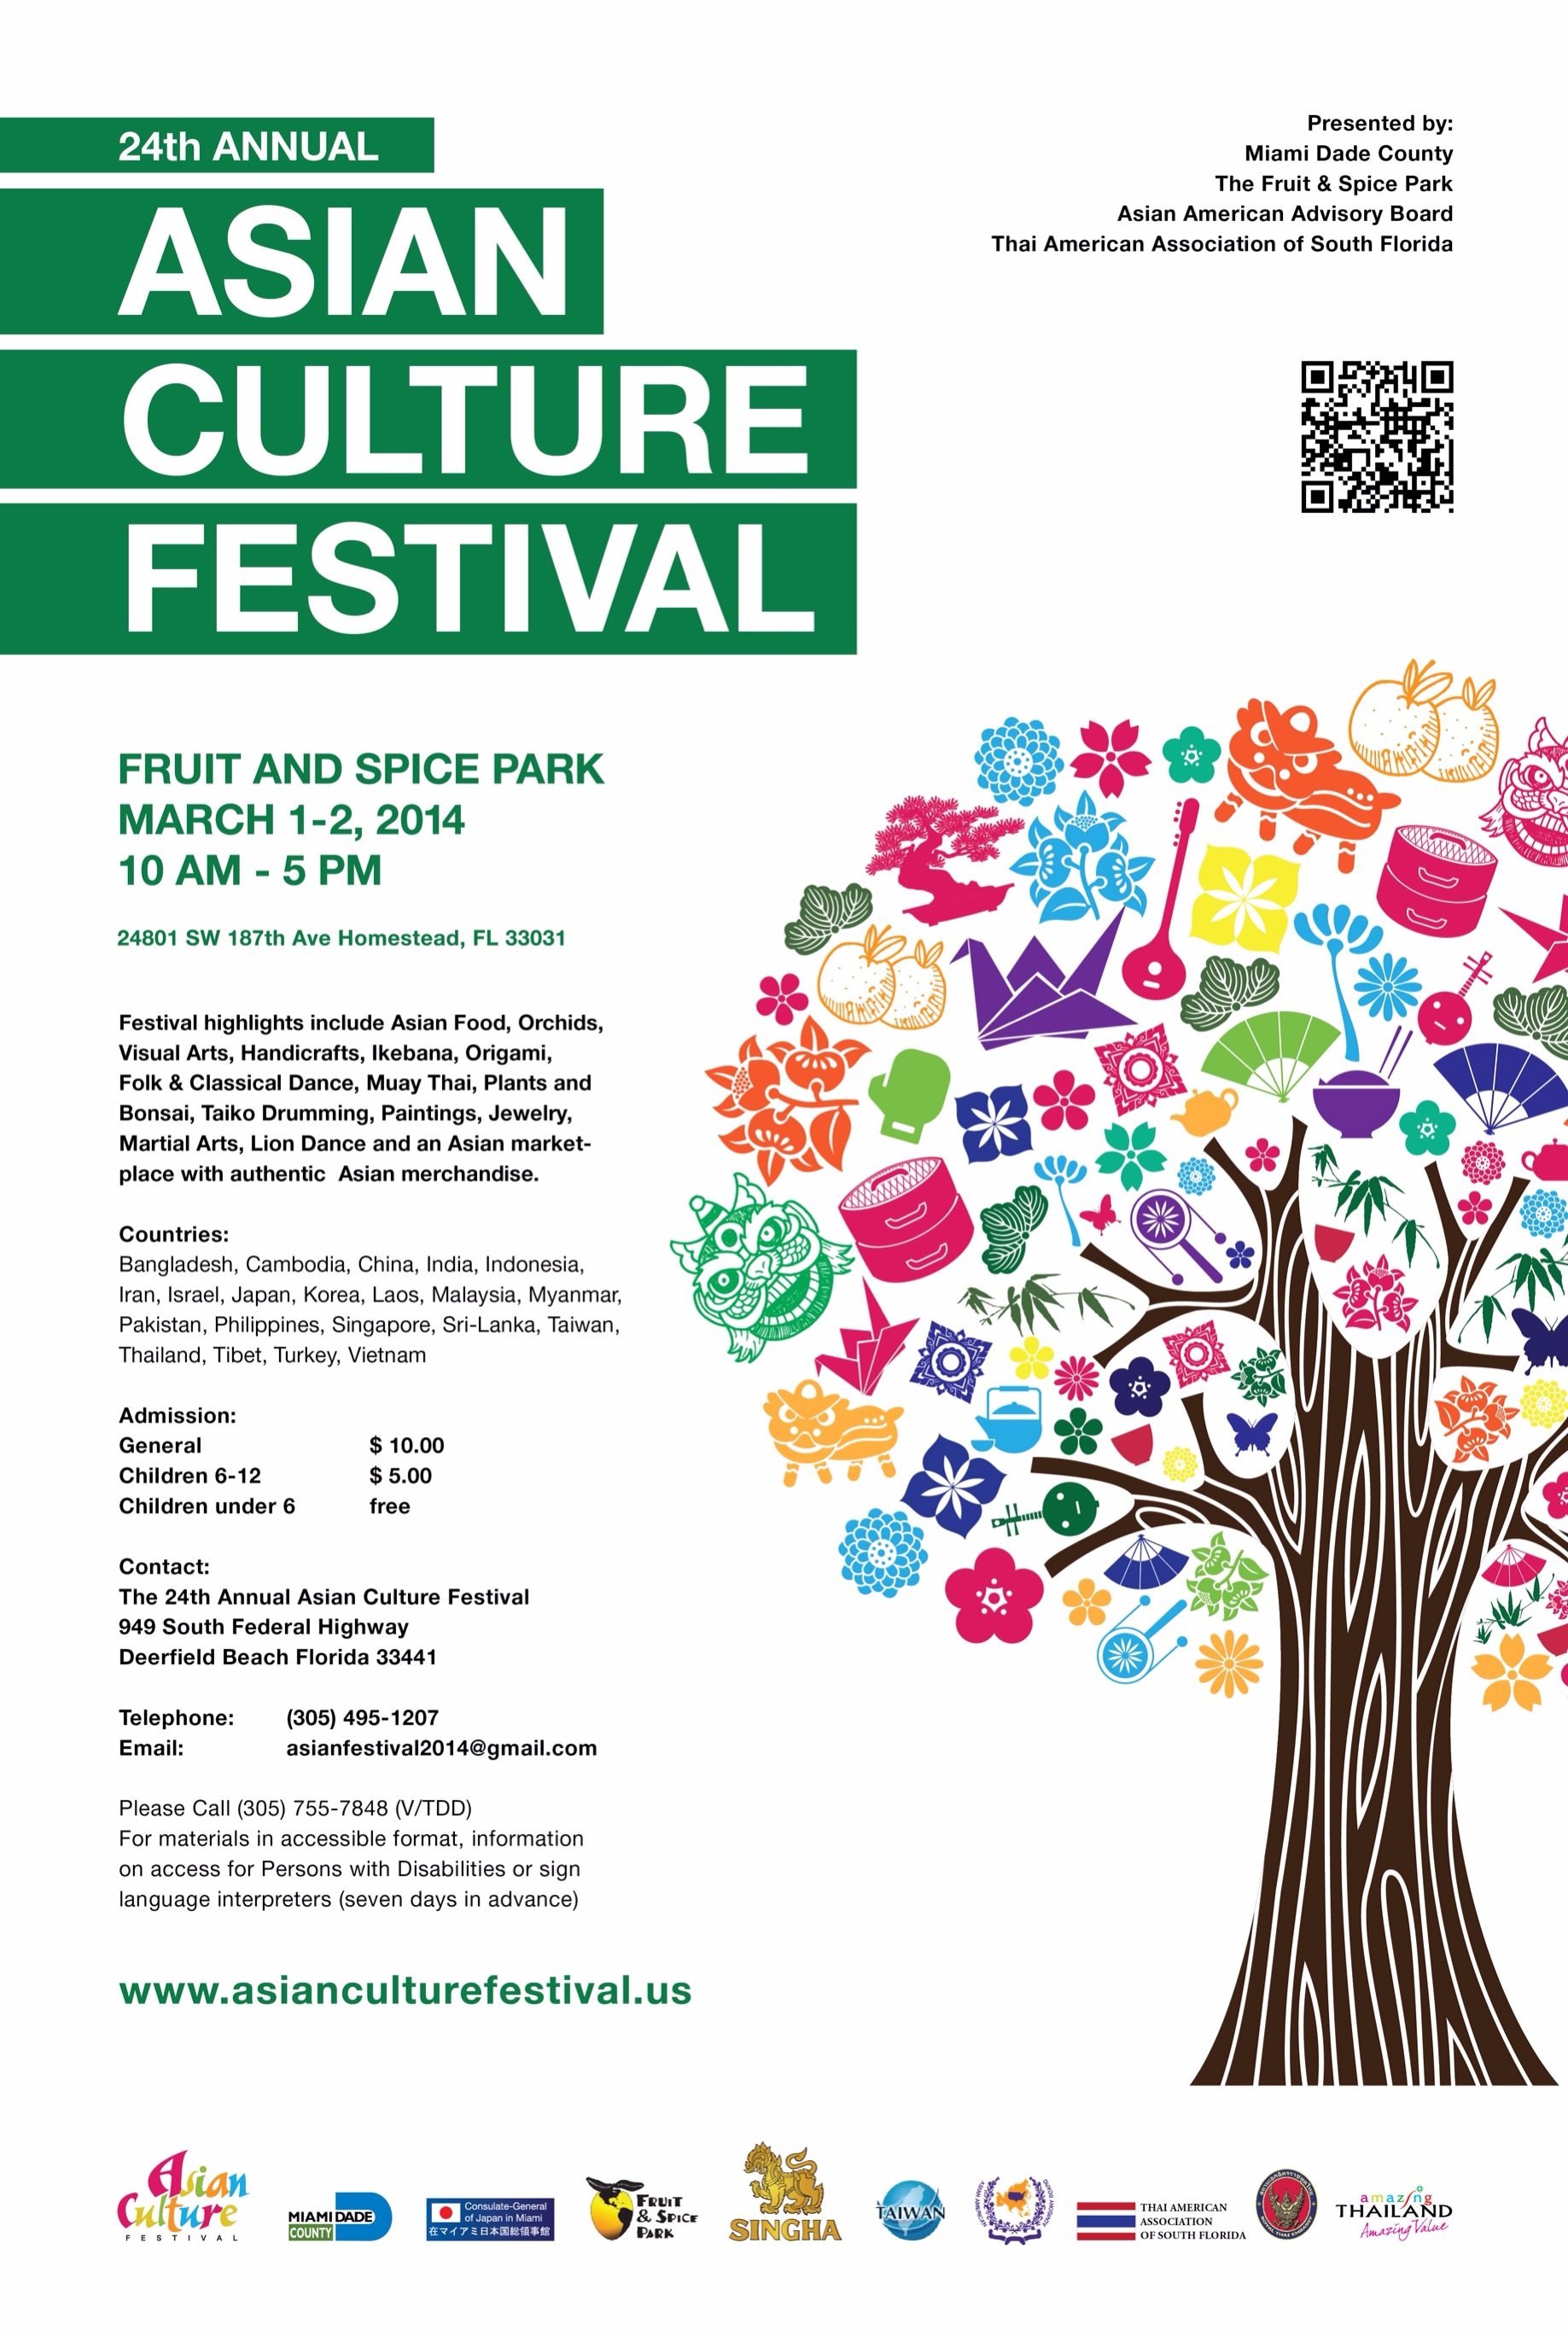 The Asian Culture Festival 2014